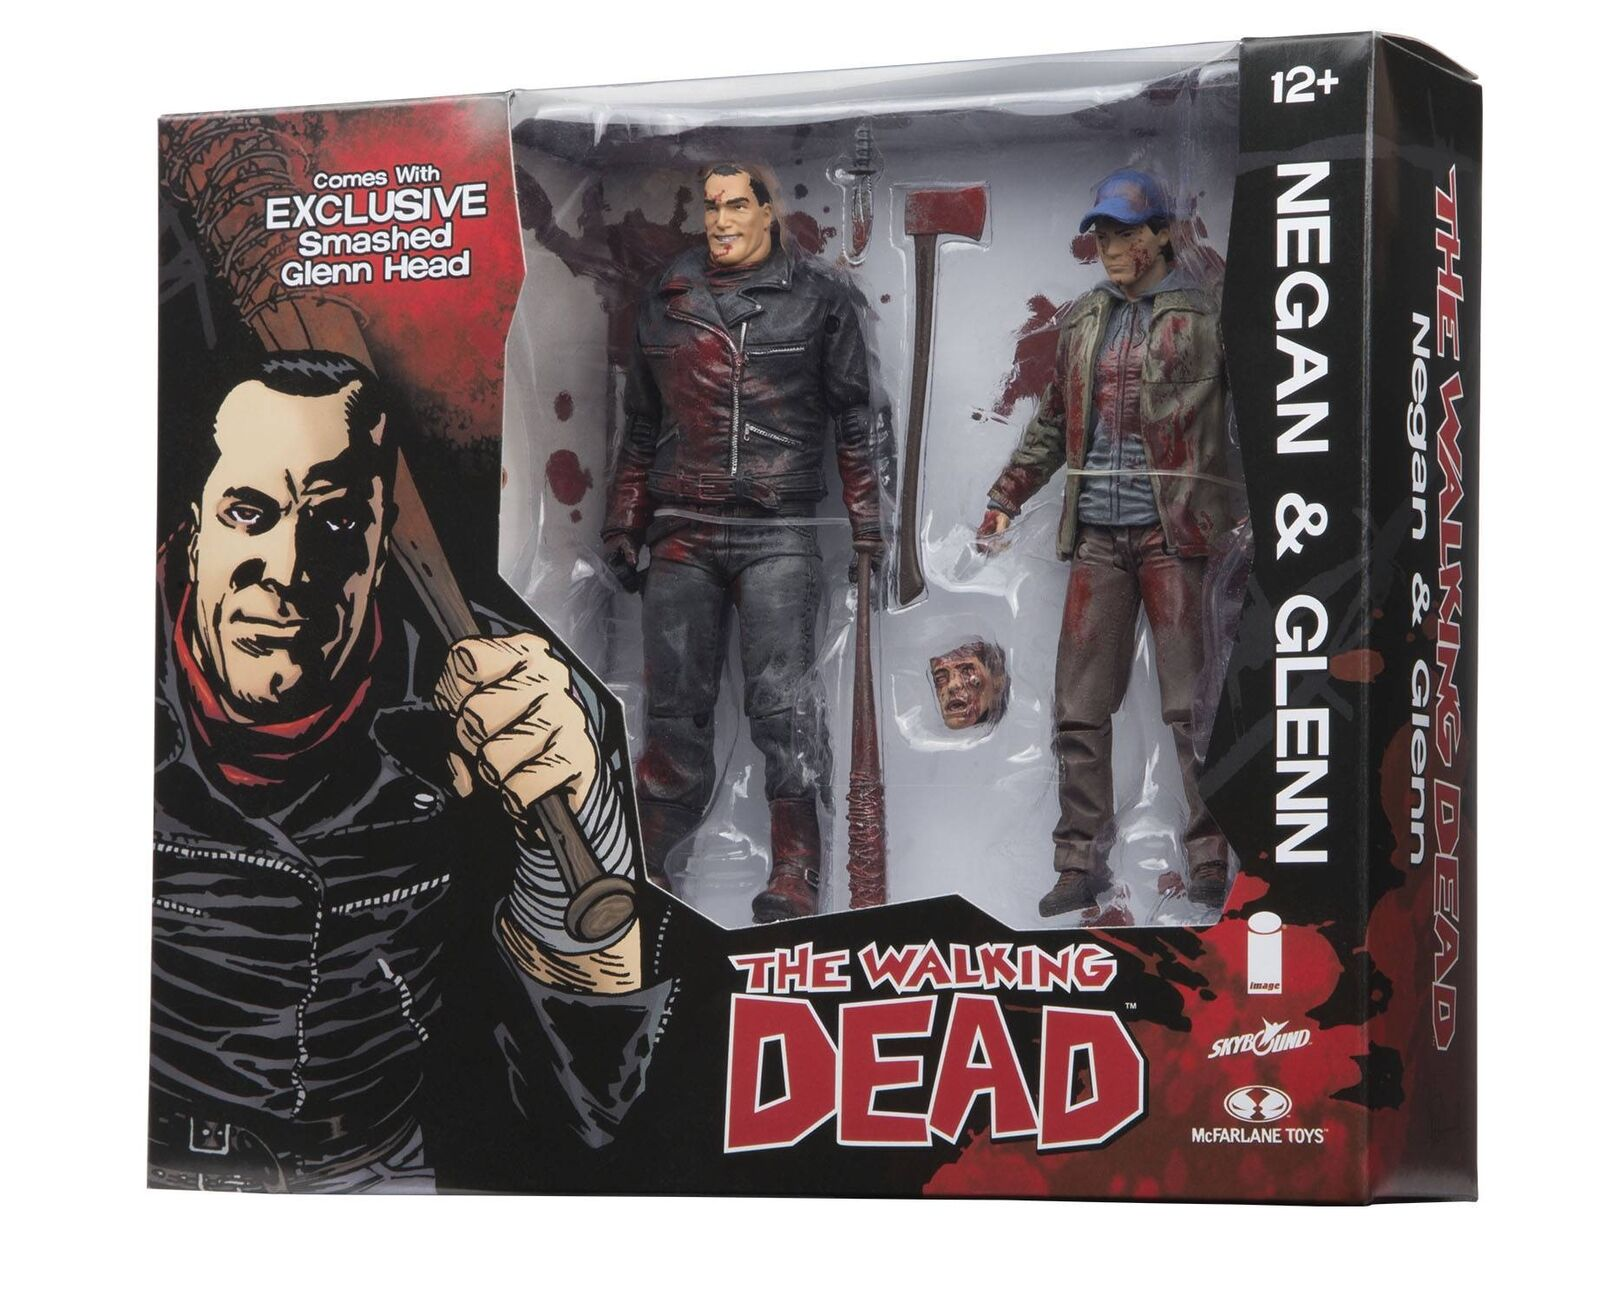 The Walking Dead Negan and Glenn Action Figure Set